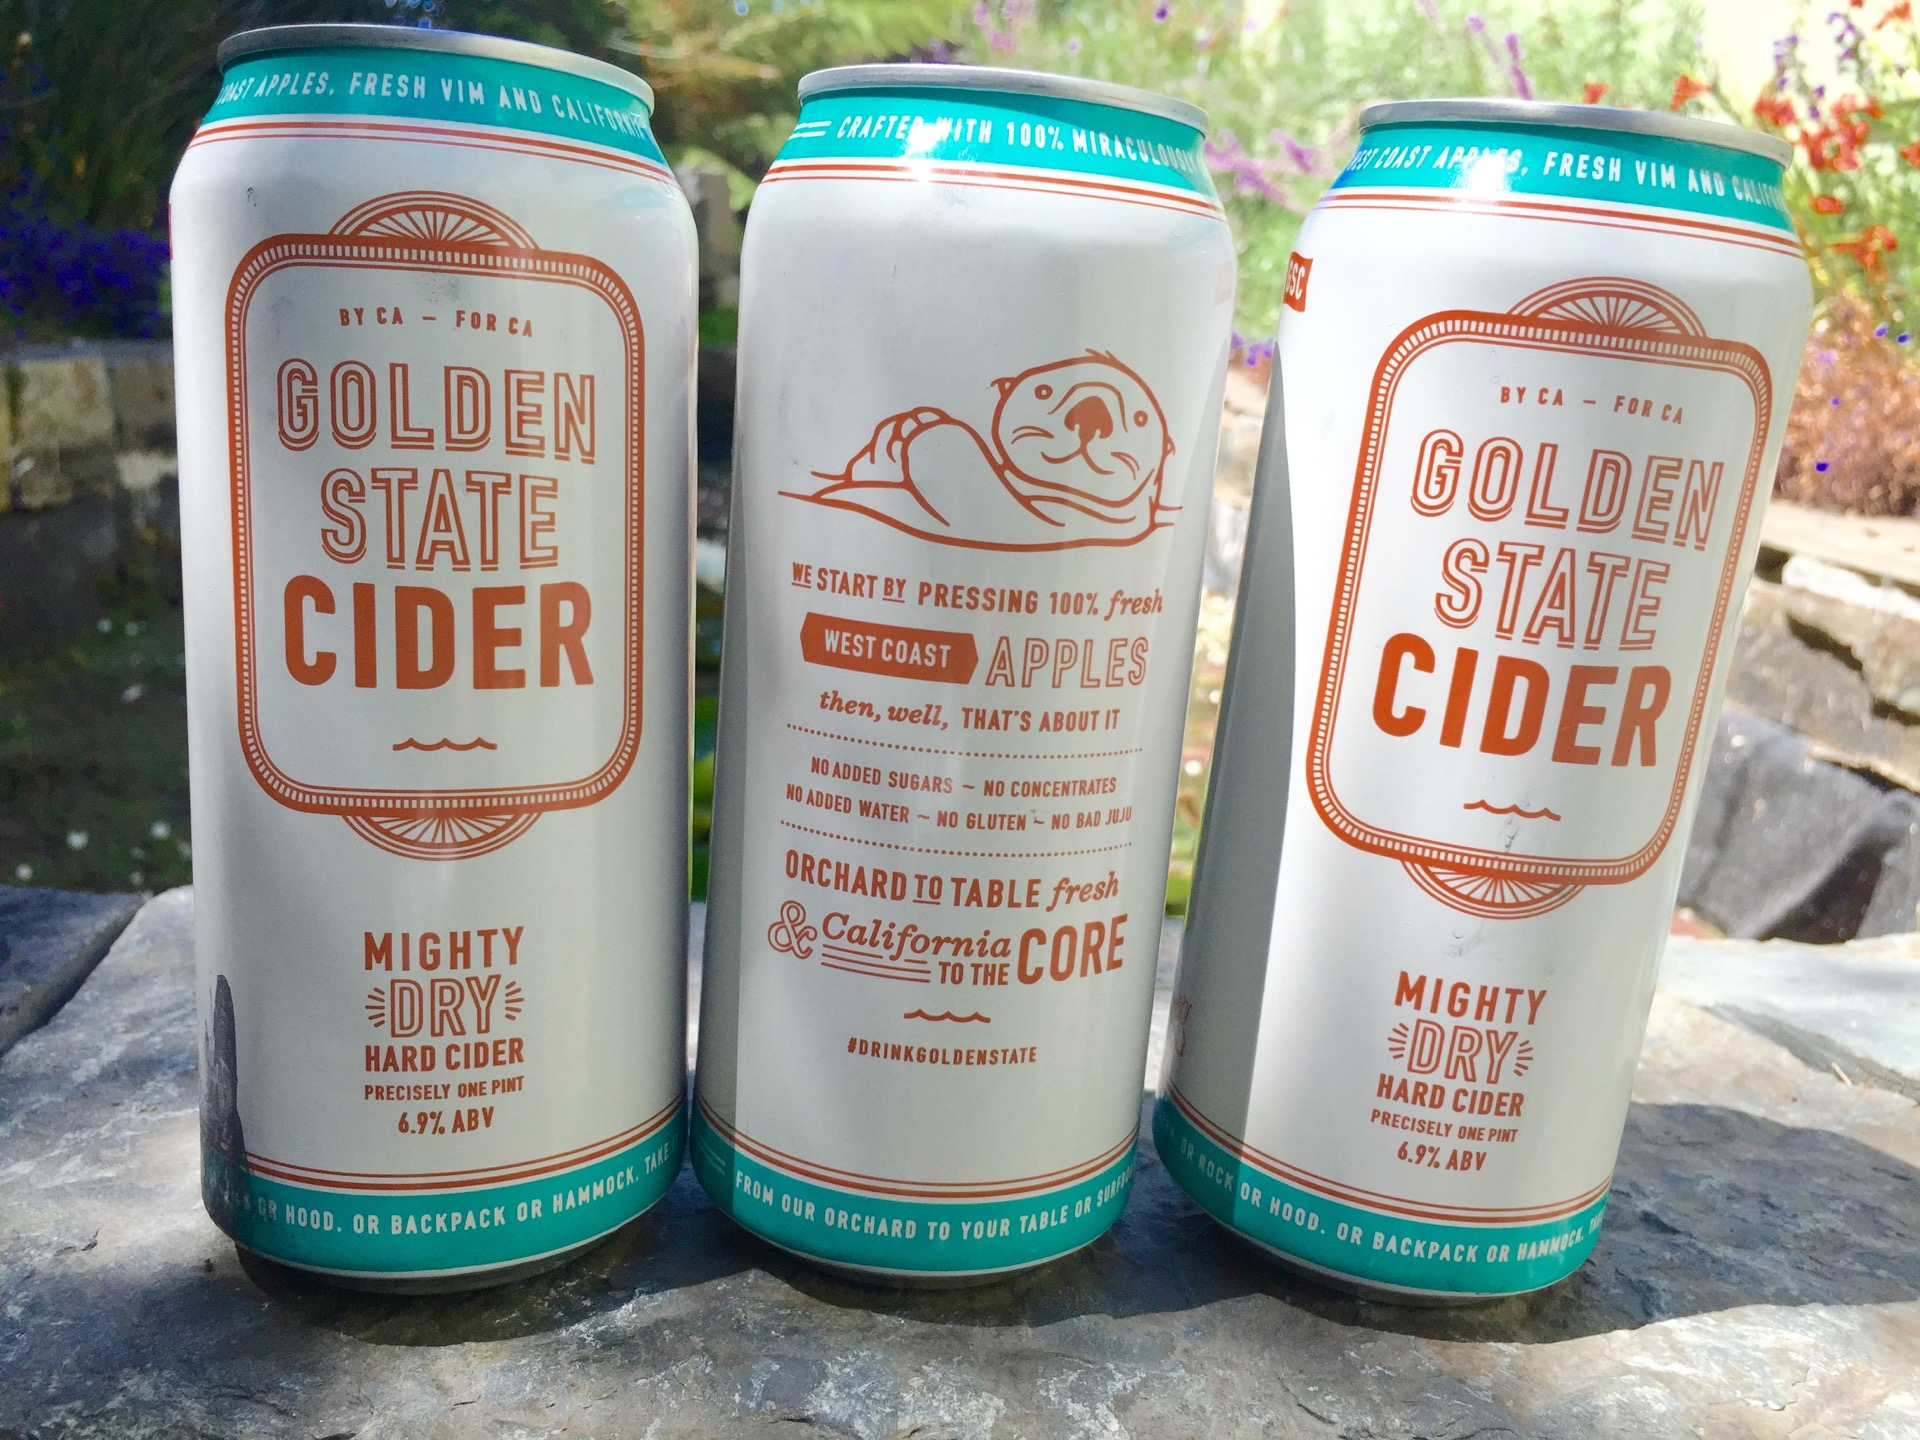 Co-founder Jolie Devoto says she always wanted craft cider in a can, so she produced one.